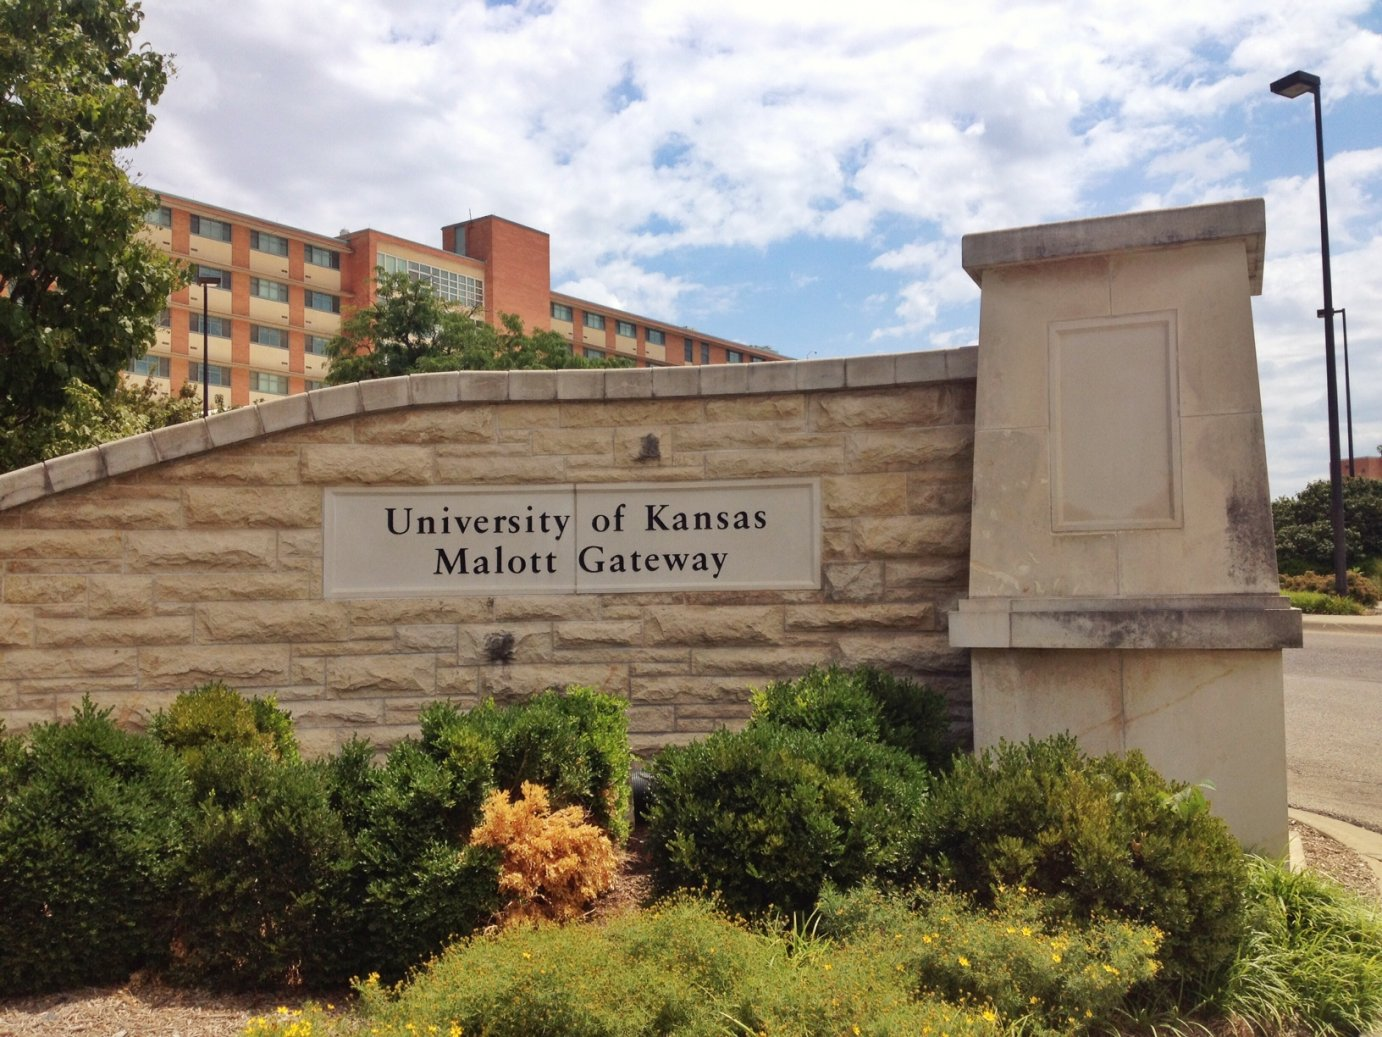 Gateway entrance to the University of Kansas in Lawrence (Photo by J. Schafer)